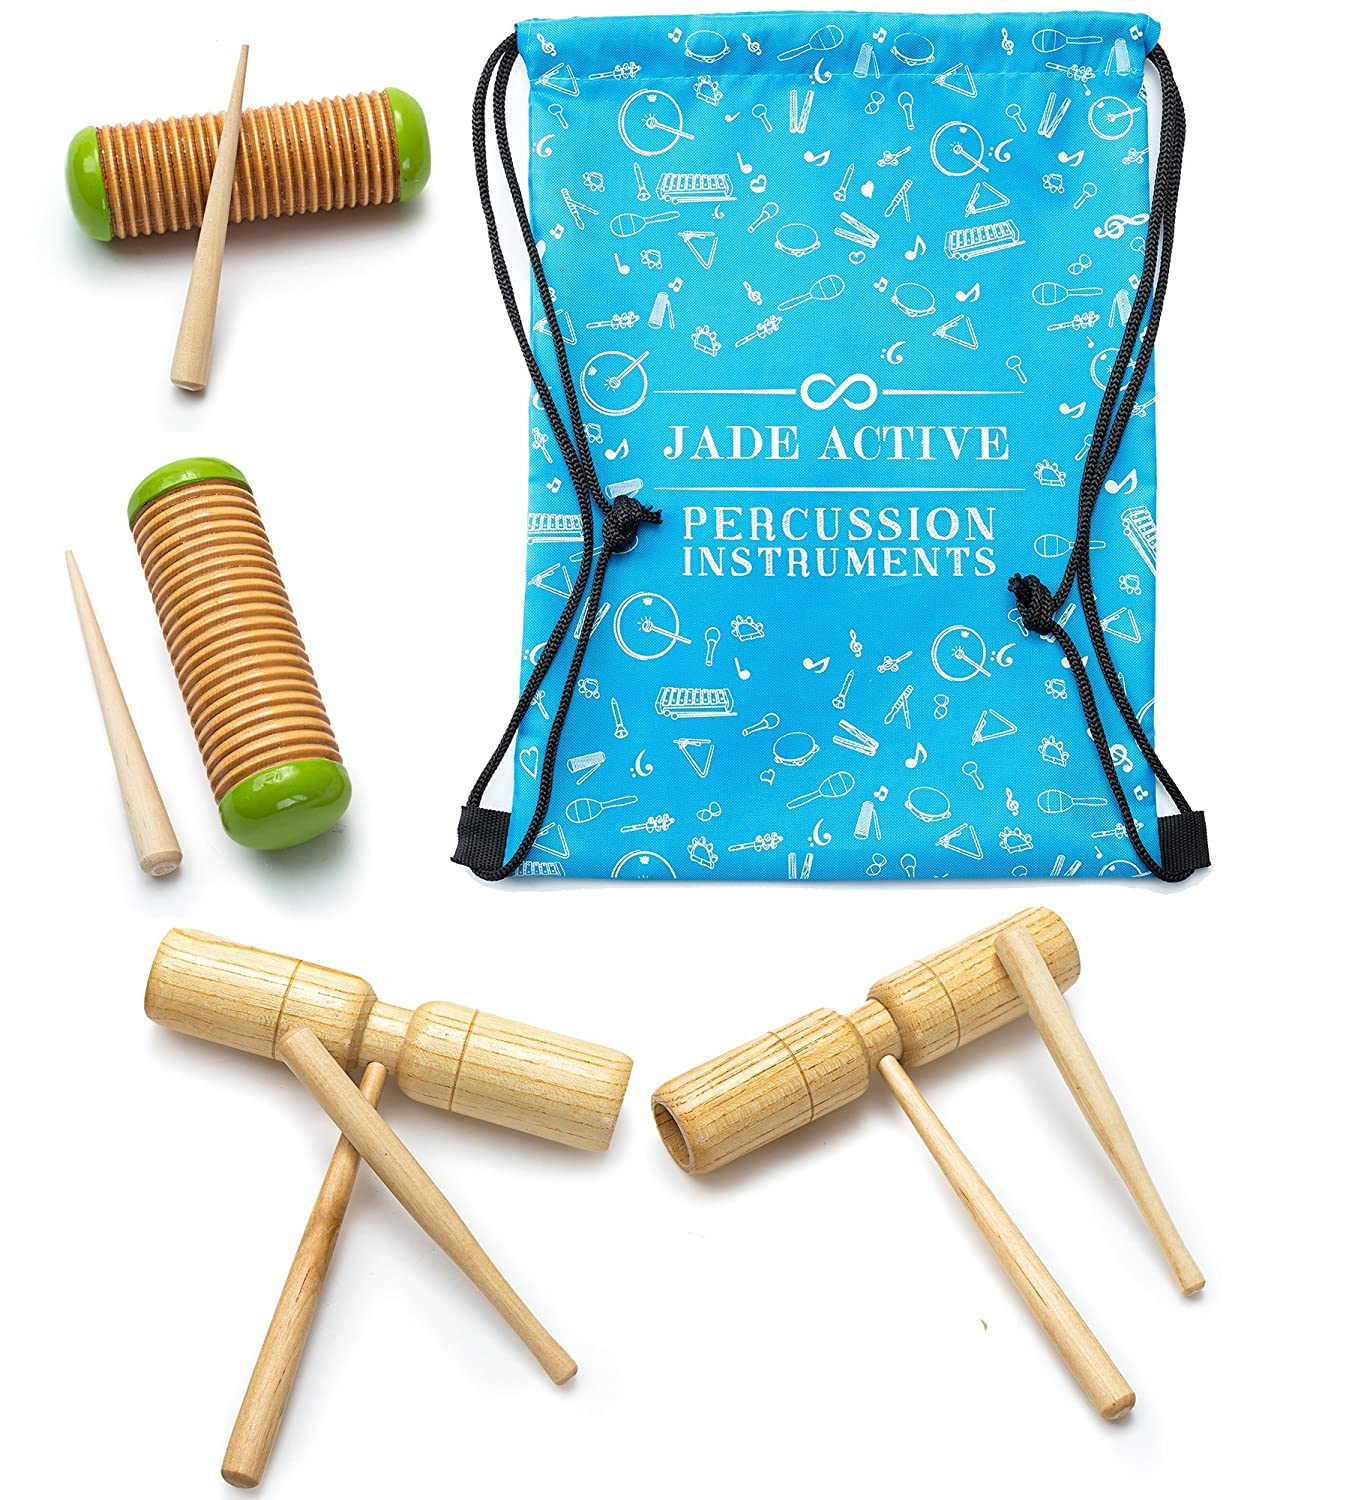 Wood Guiro Percussion Set - Great Musical Toys for Kids that Help Children Learn and Develop! 10784752